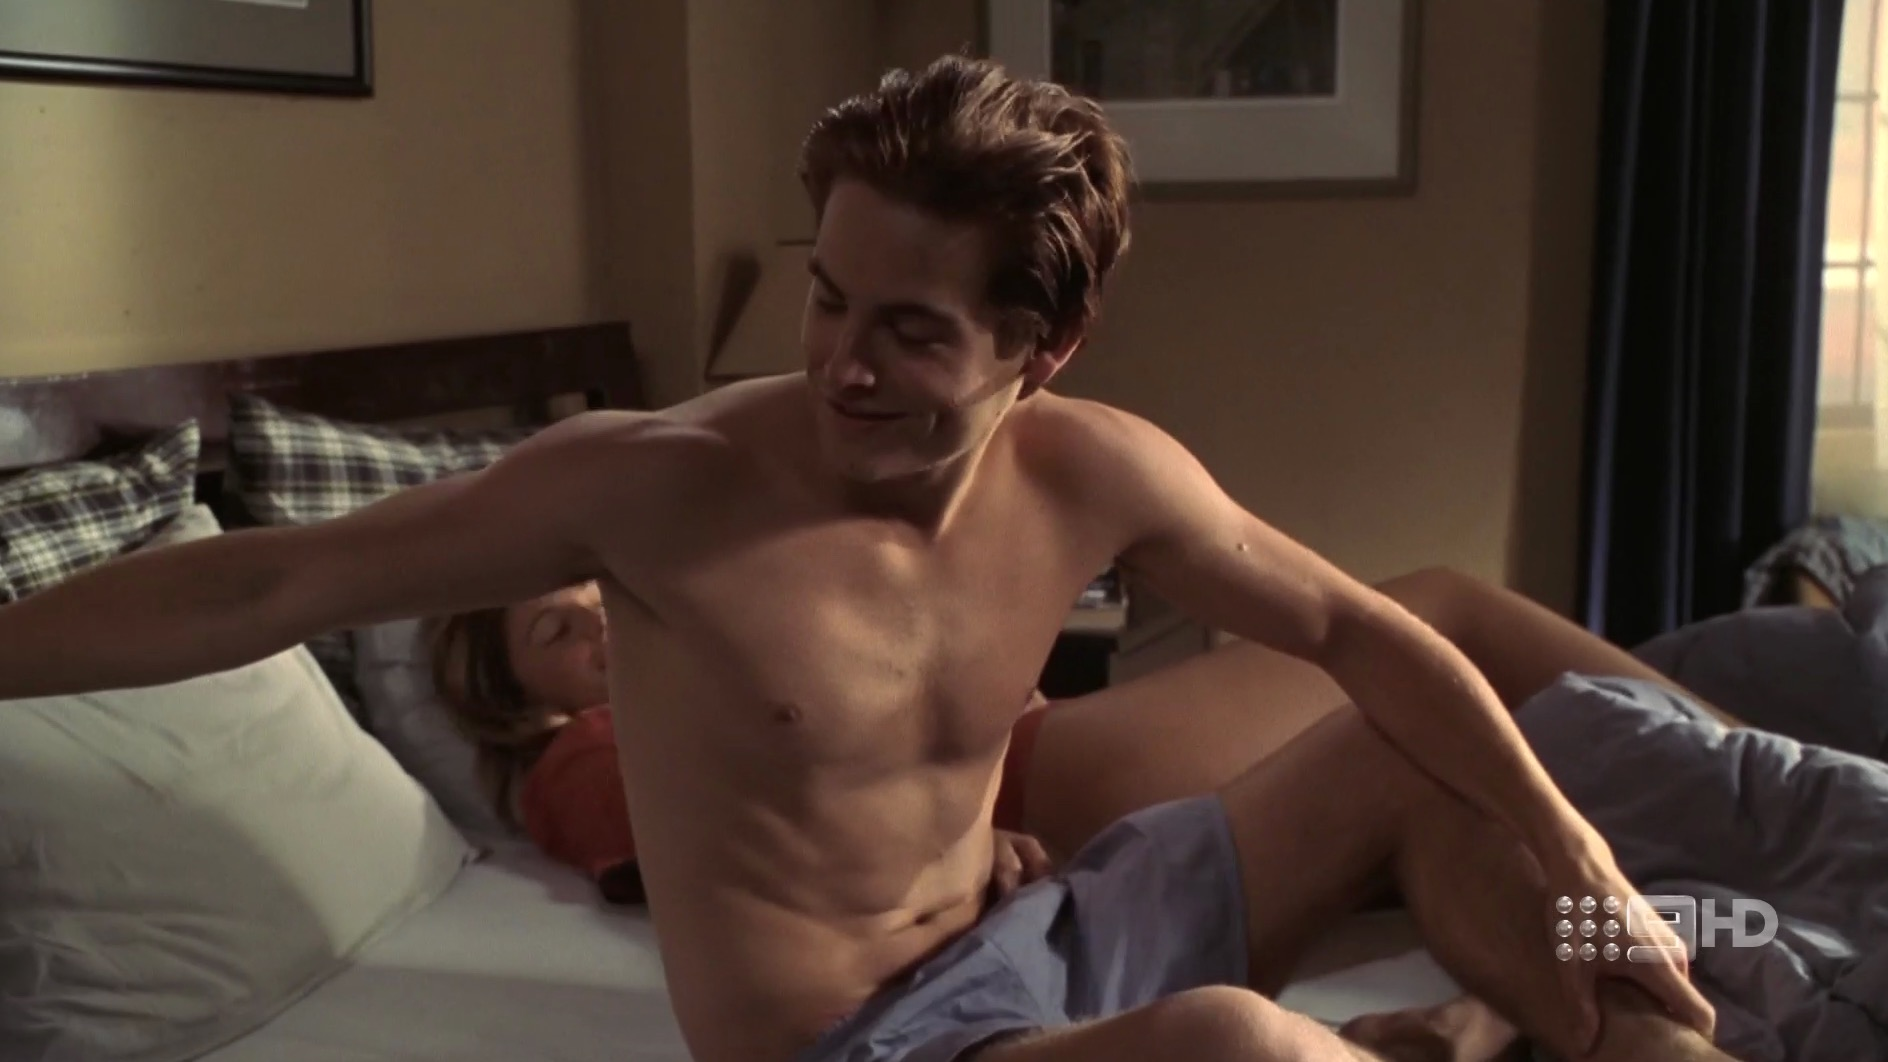 Kevin zegers nude confirm. And